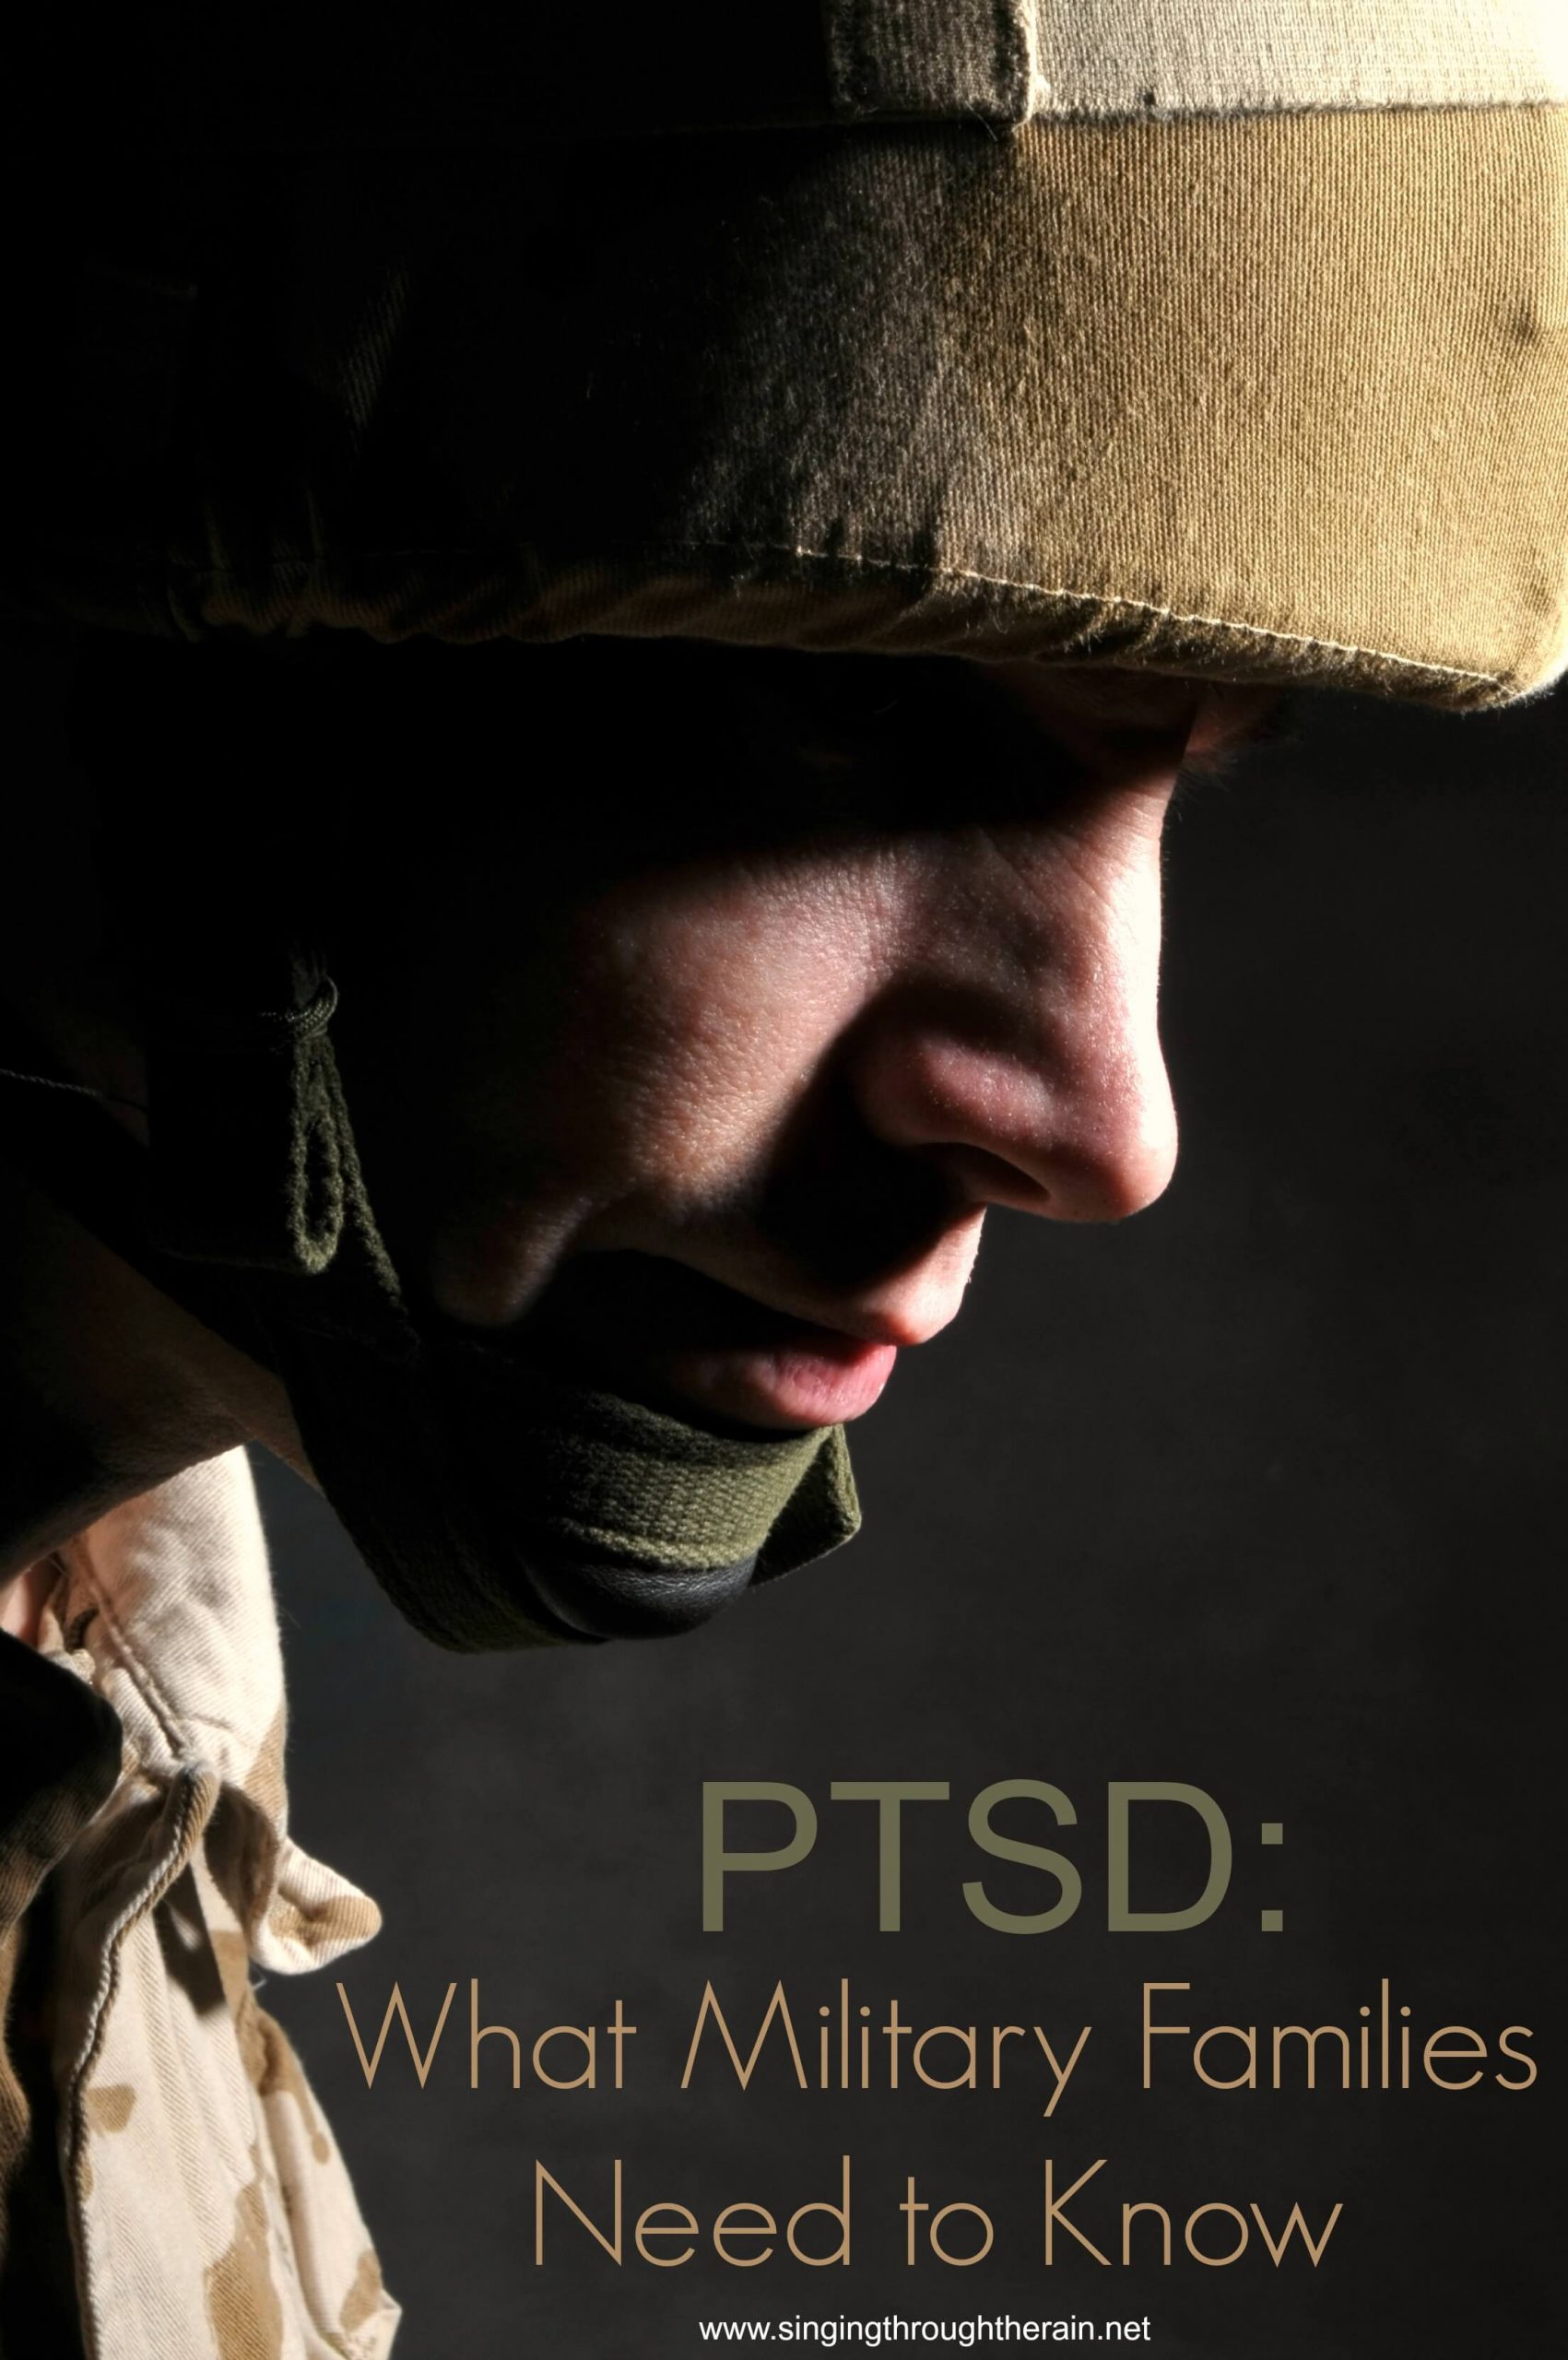 Ptsd What Military Families Need To Know